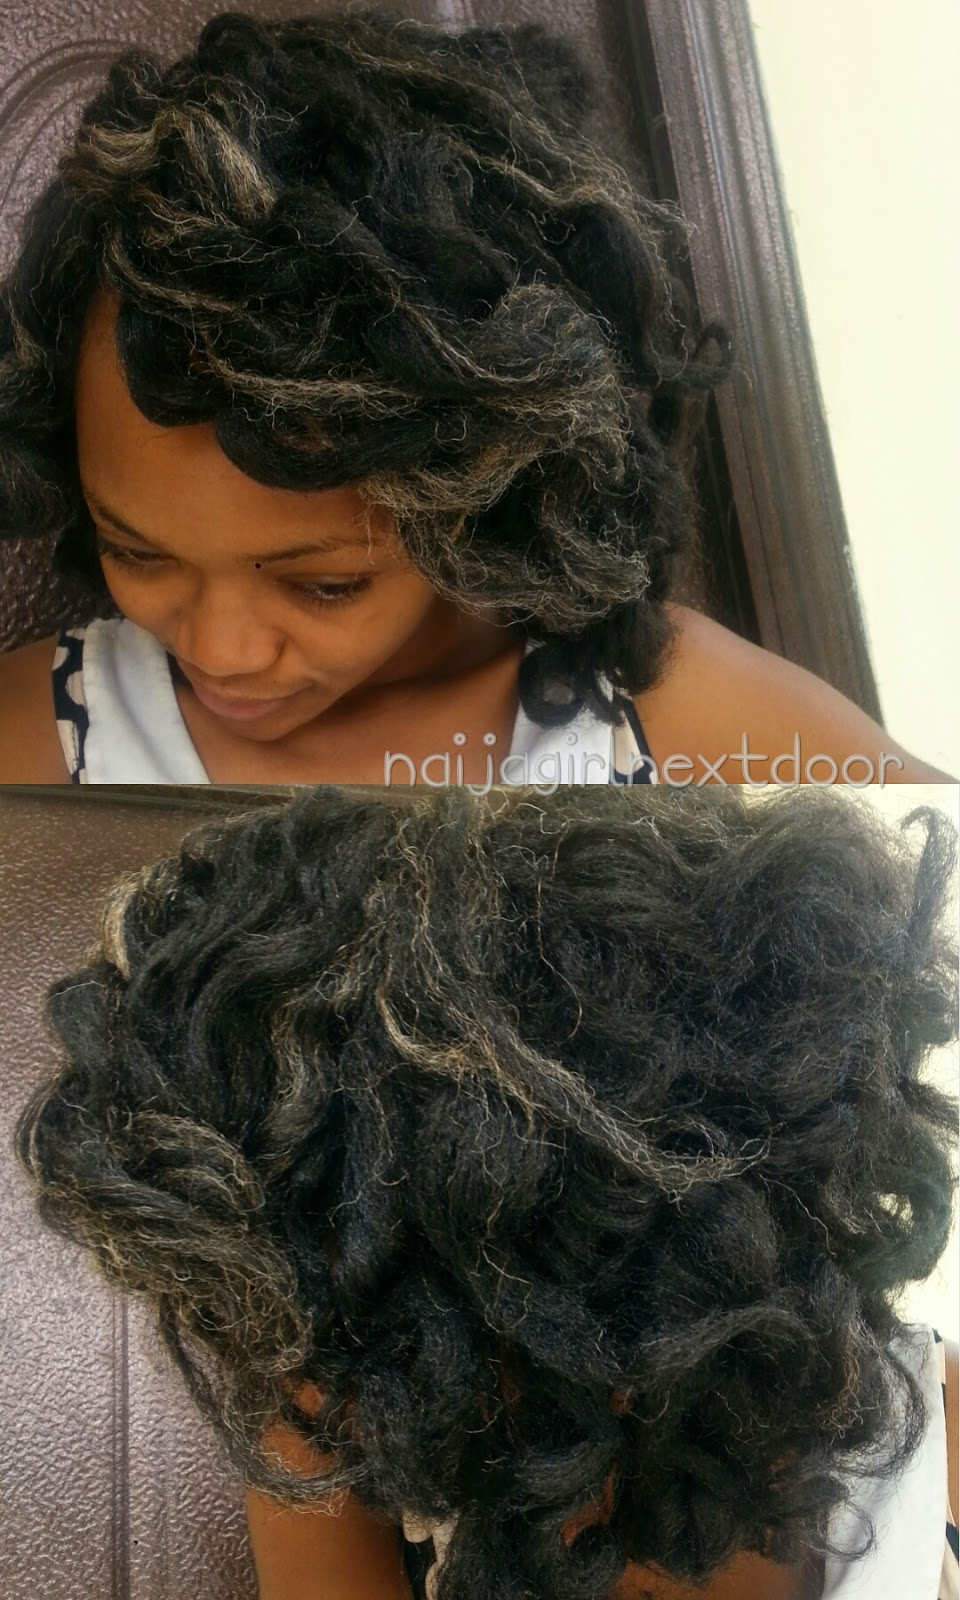 Crochet Braids Part : style: Crochet braids with invisible part (no knot) Naija girl ...